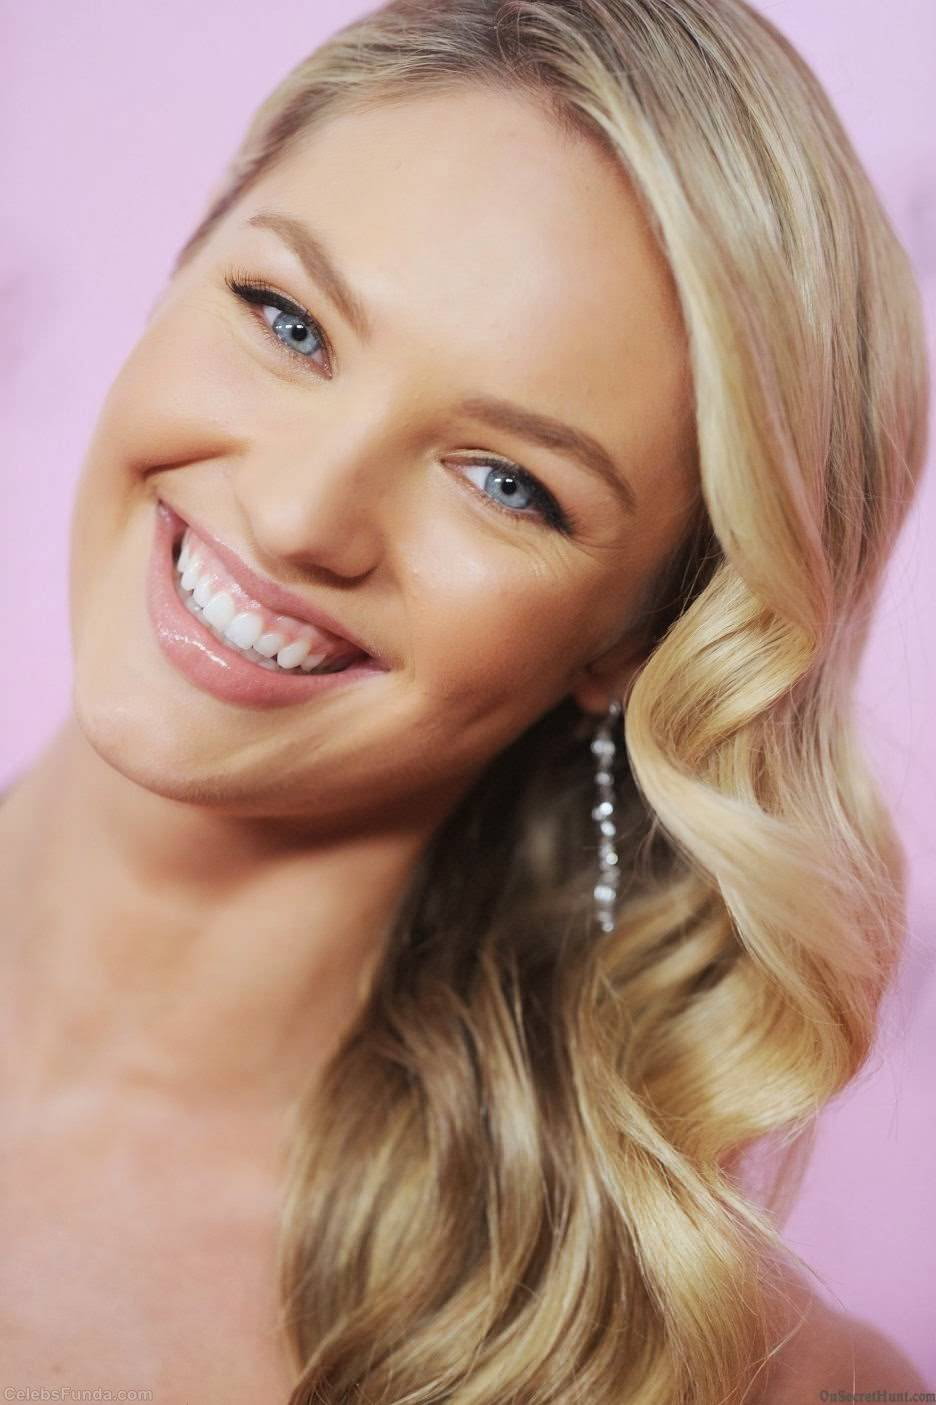 Hair Extensions: 5 Crucial Care Tips!